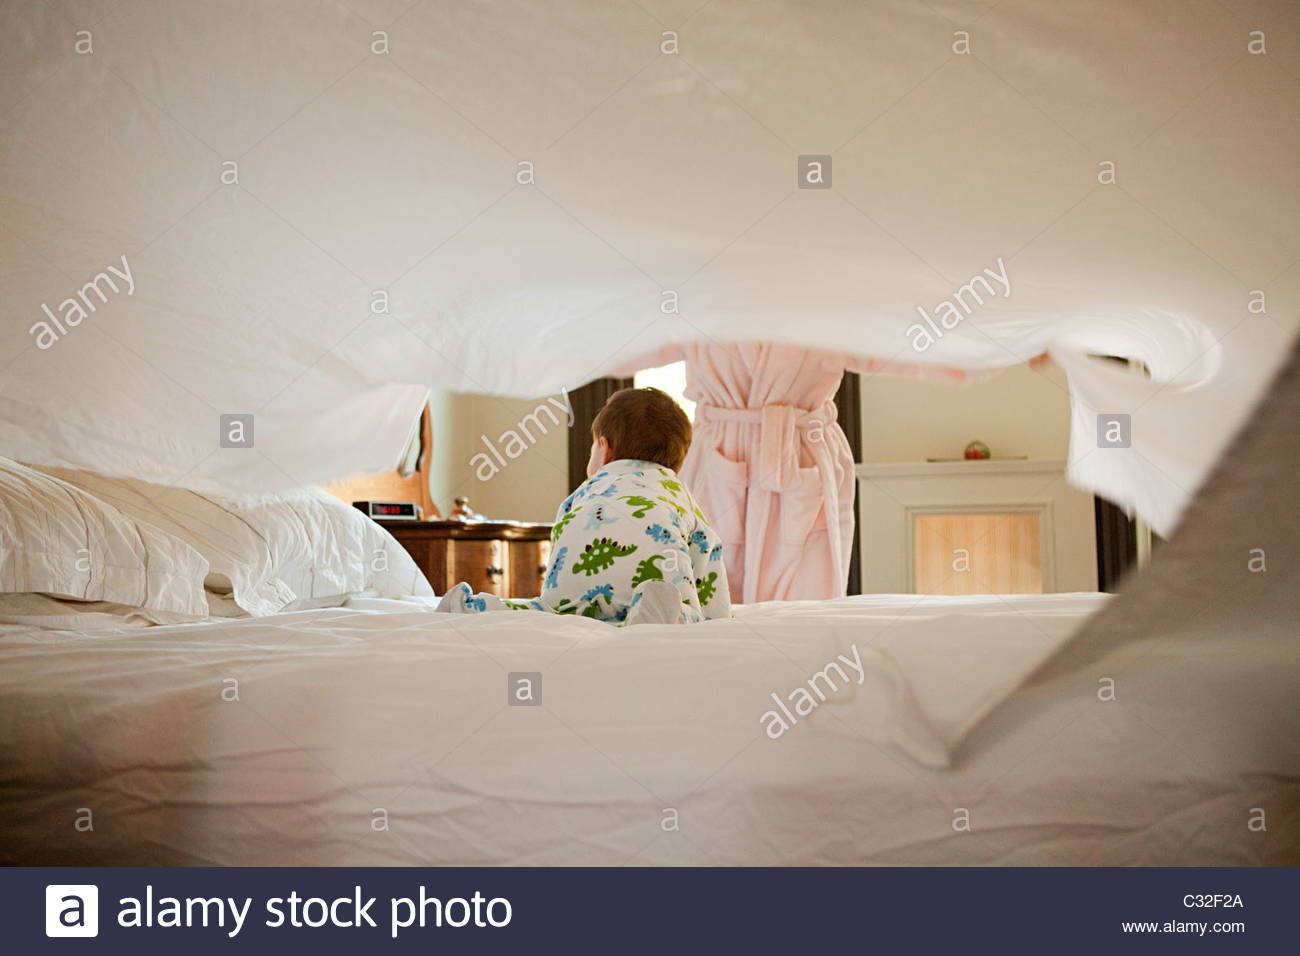 Mother and baby son making bed - Stock Image